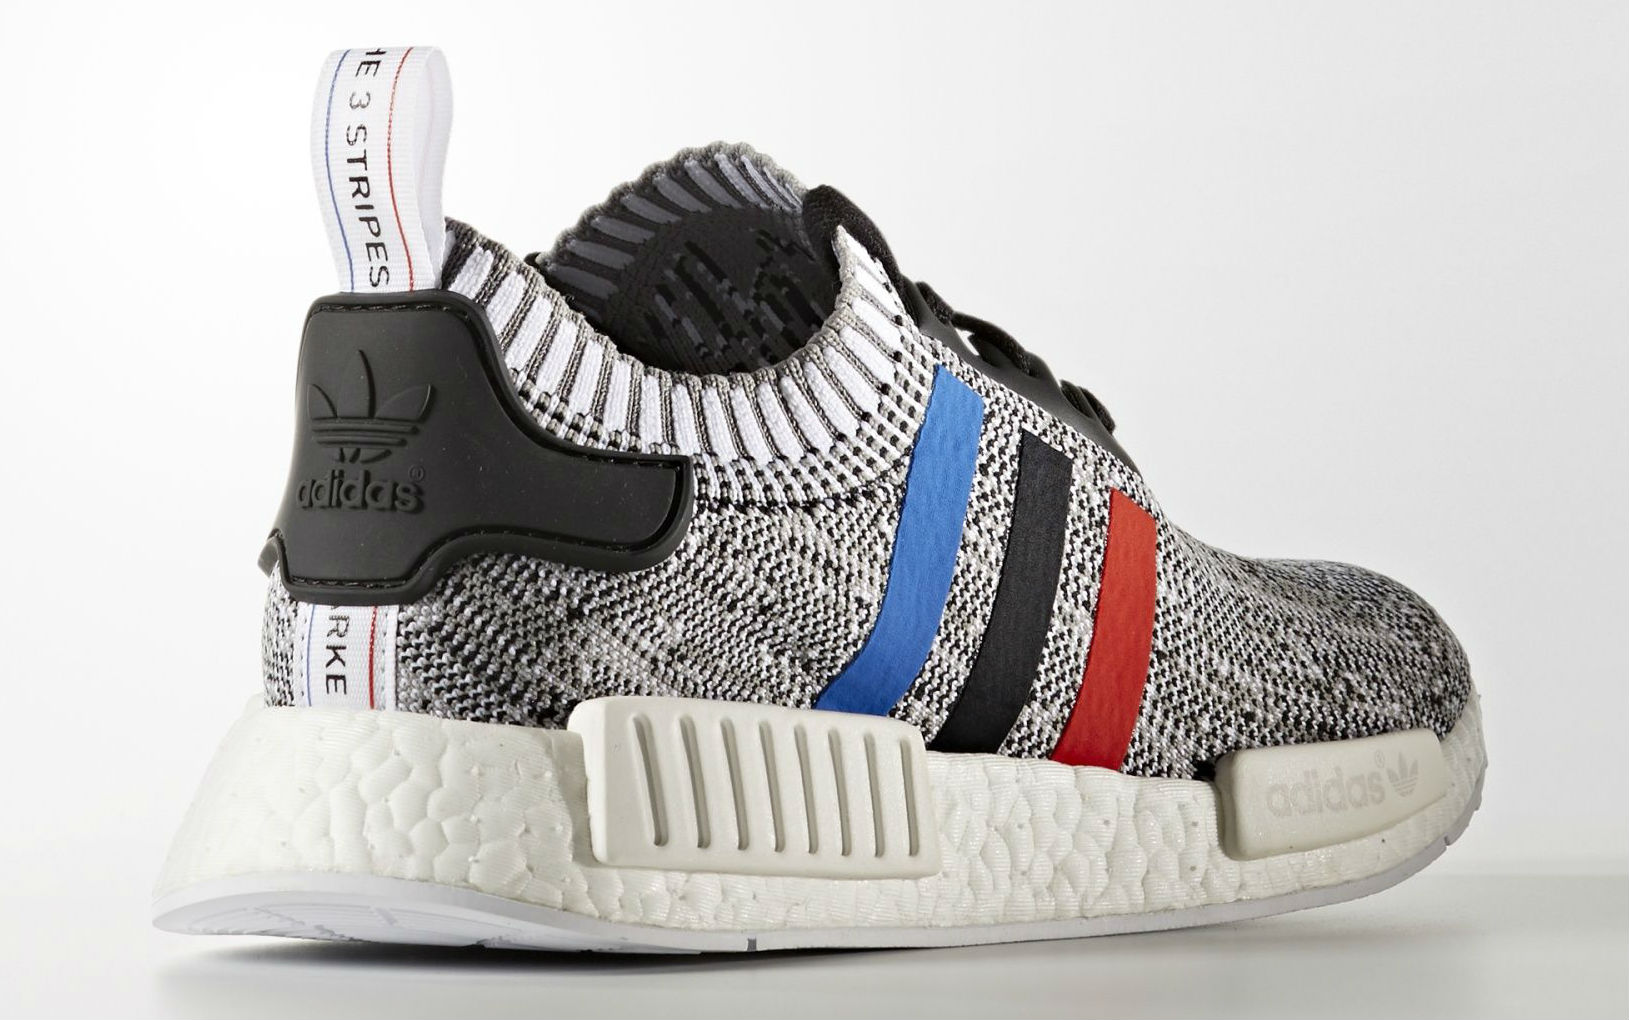 super popular 28099 d9fb1 adidas NMD Primeknit Red, White & Blue Stripes | Sole Collector